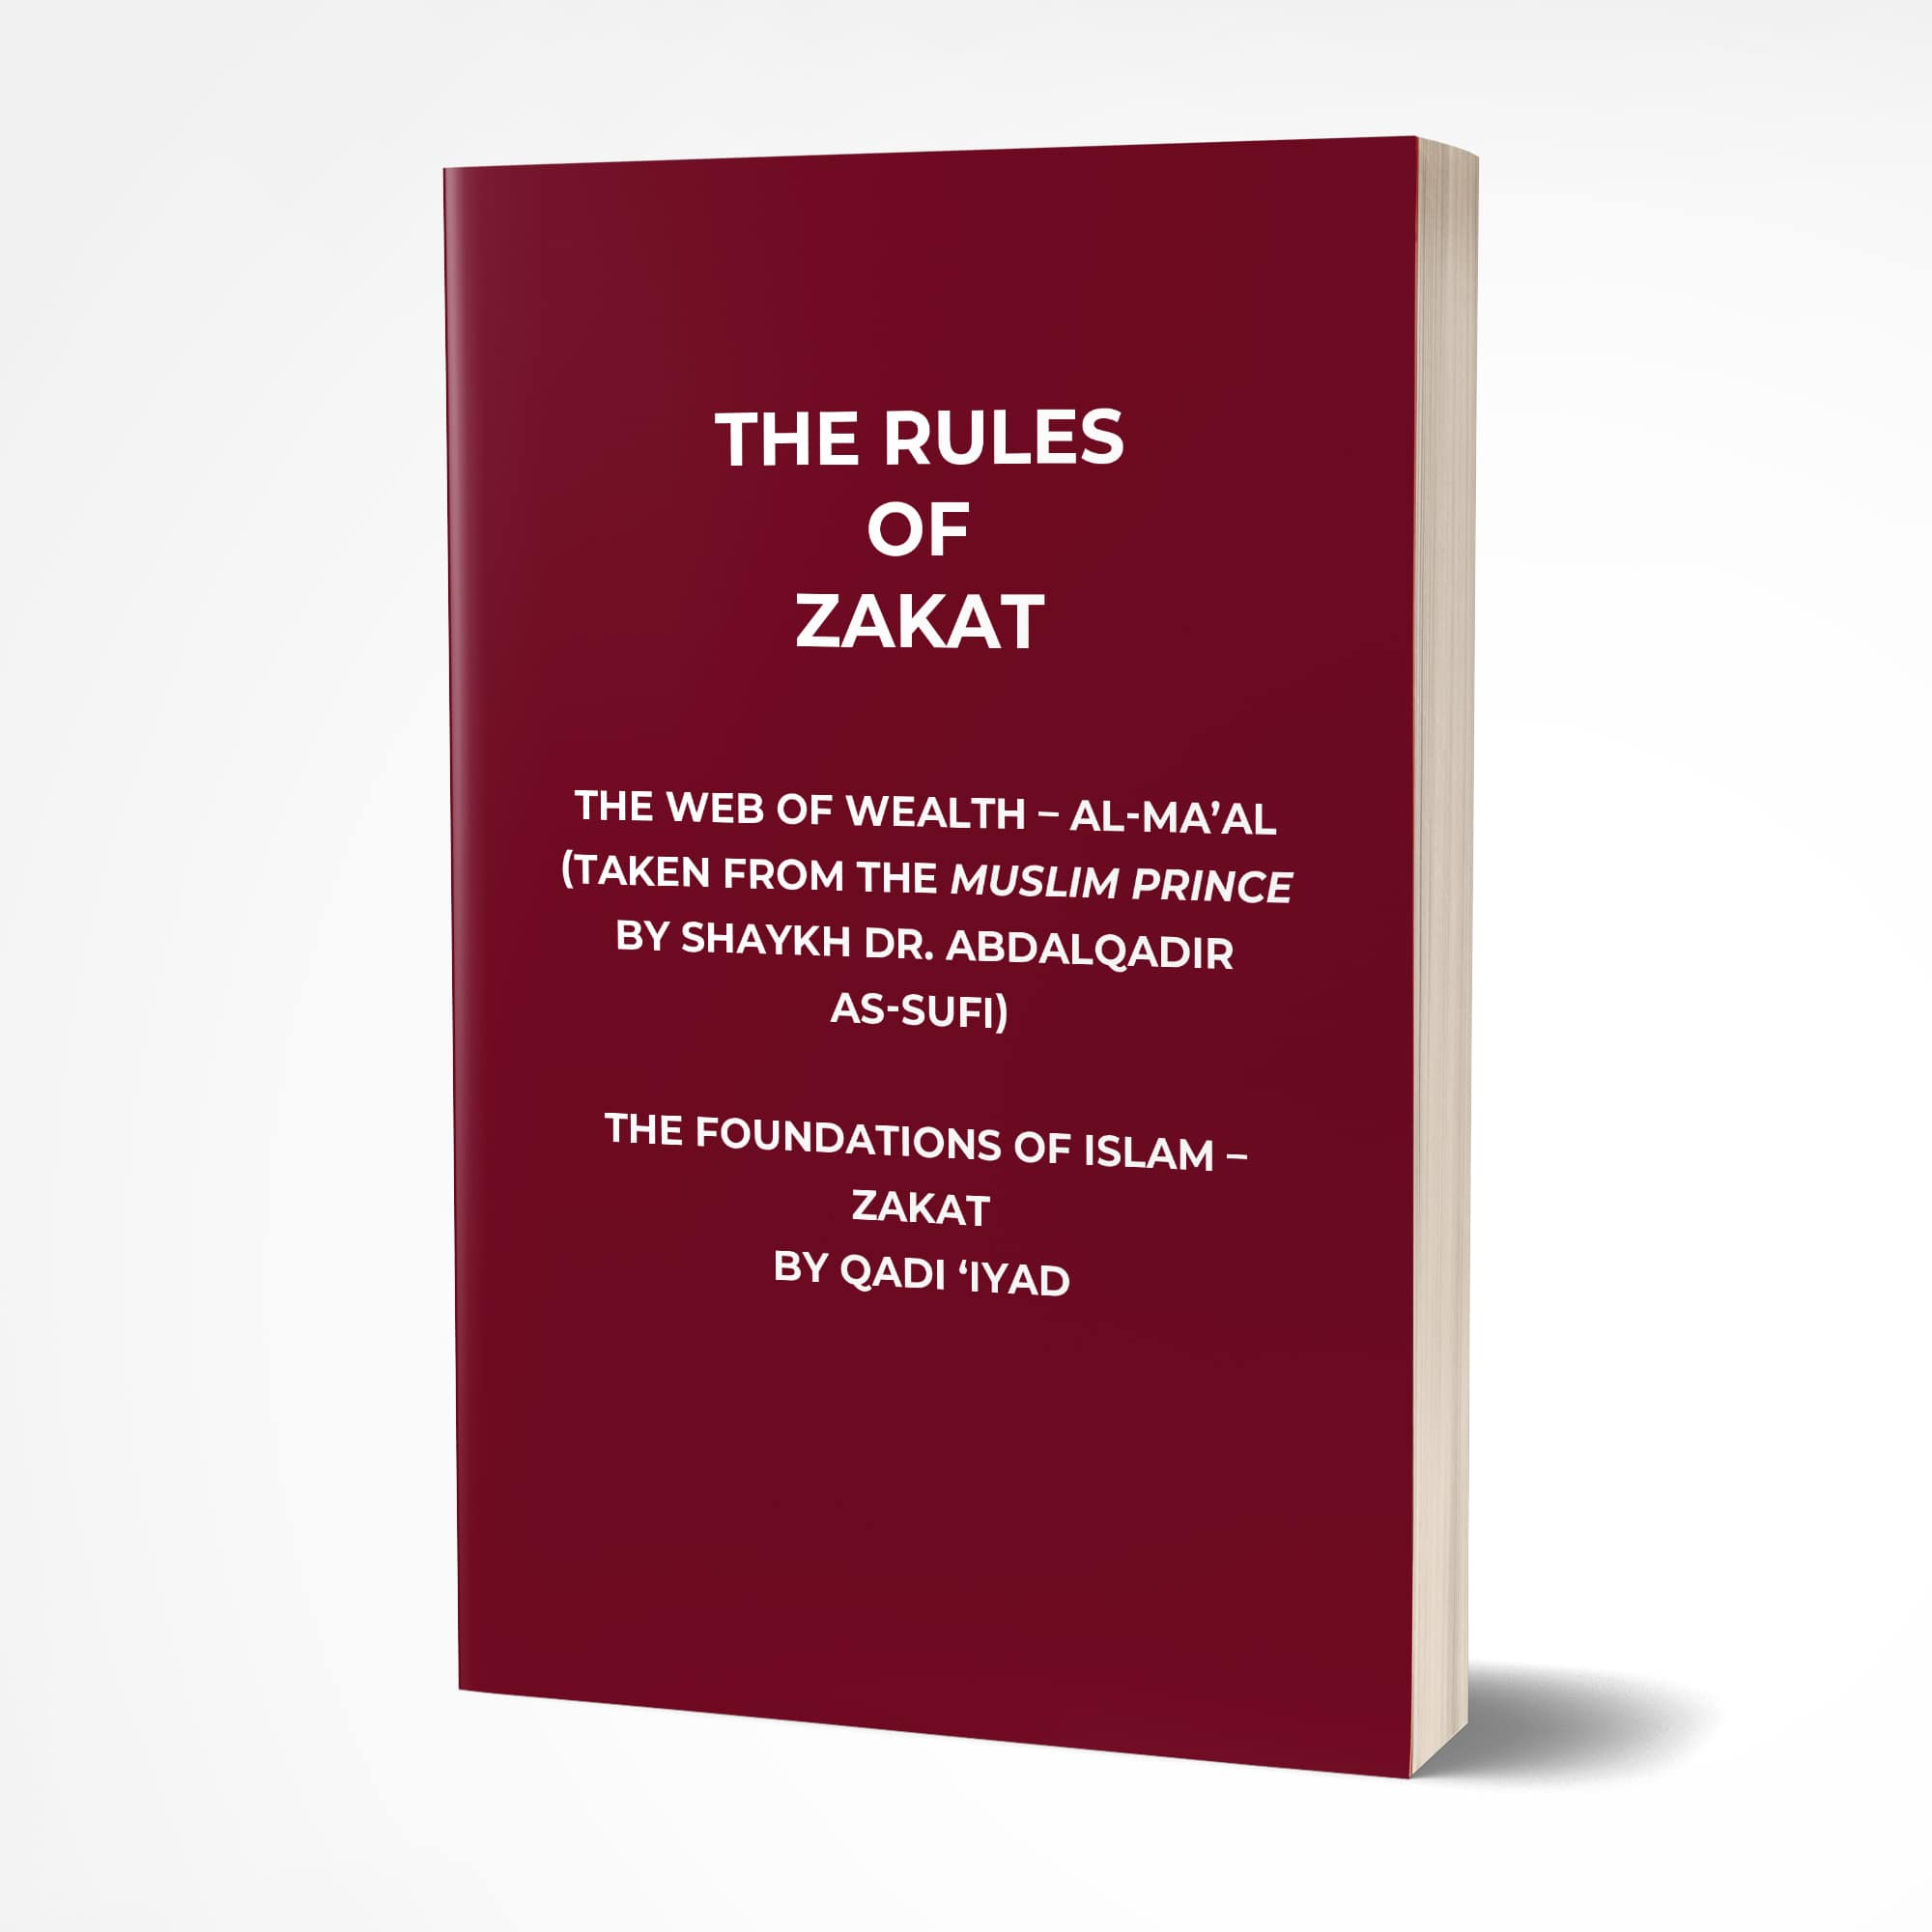 the-rules-of-zakat-cover-min